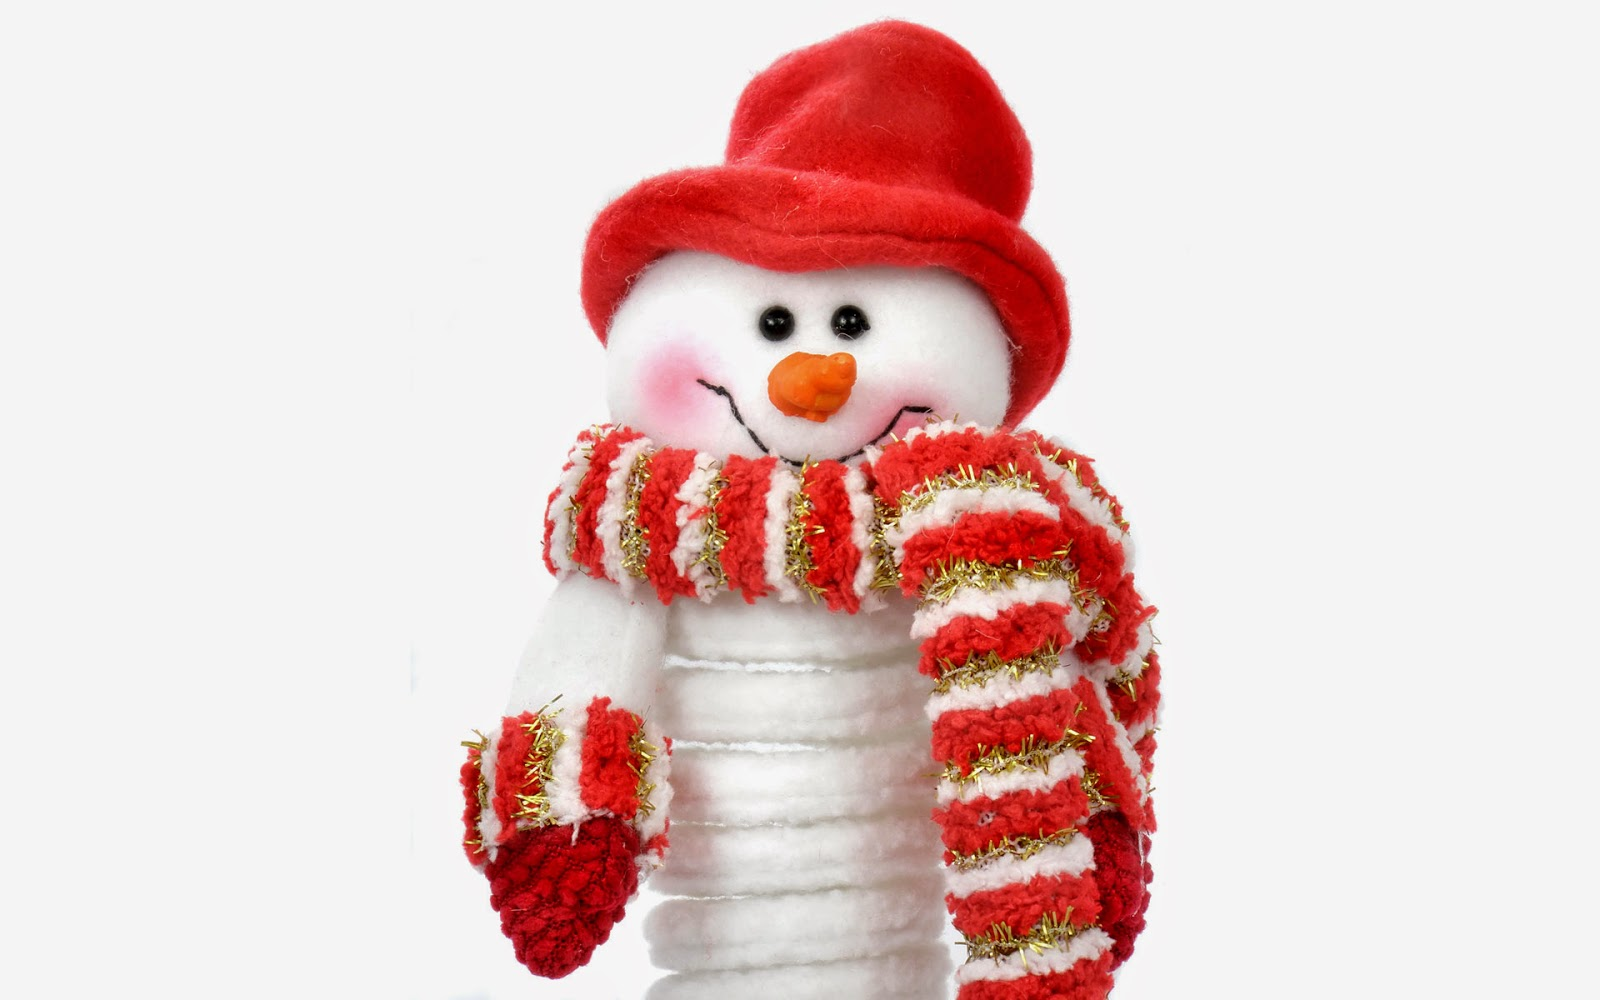 Cute-snowman-with-red-hat-white-background-HD-wallpaper.jpg